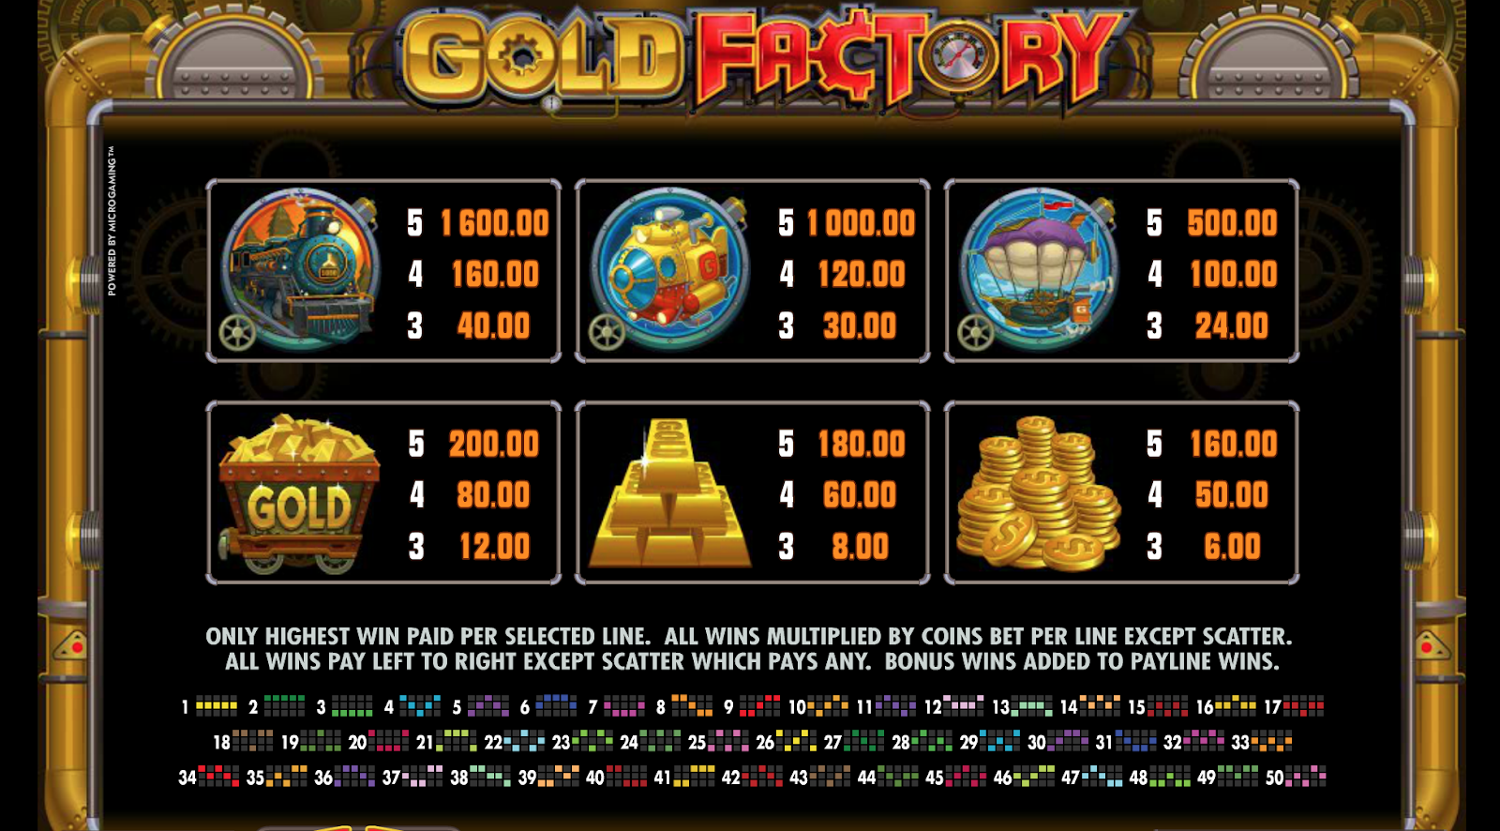 Gold Factory Paytable and Winlines